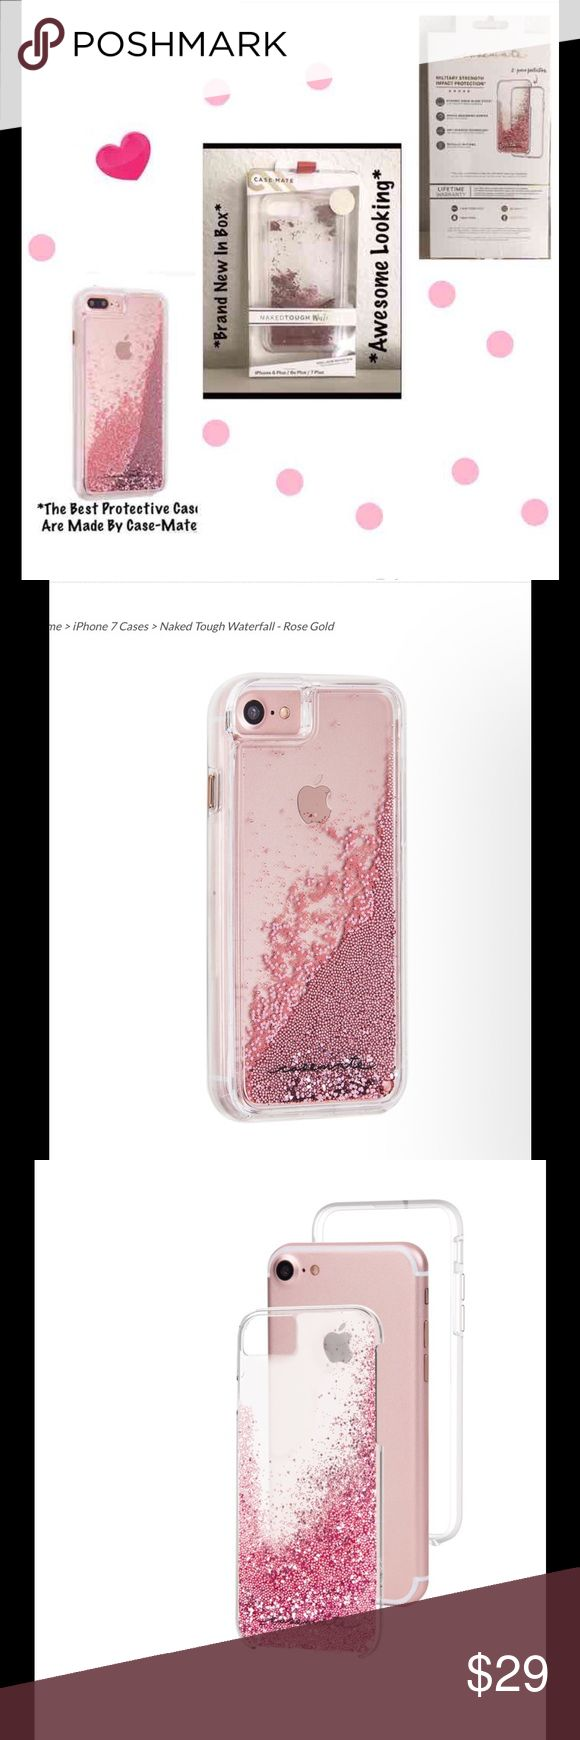 BNIP:CaseMate Naked Tough Waterfall Case iPhone 7P BNIP:Case-Mate Naked Tough Waterfall Case iPhone 6 Plus,6S,iPhone 7 Plus Rose Gold Glitter Waterfall Case Captivate you W/its cascading sparkle & tumbling glitter.Enhanced dual-layer protection W/refined metallic button accents Military strength impact protection Dual layer protection W/a slim silhouette Shock absorbing bumper Anti-scratch technology Lifetime warranty Case is certified to meet or exceed  MIL-STD-810G drop test standards…